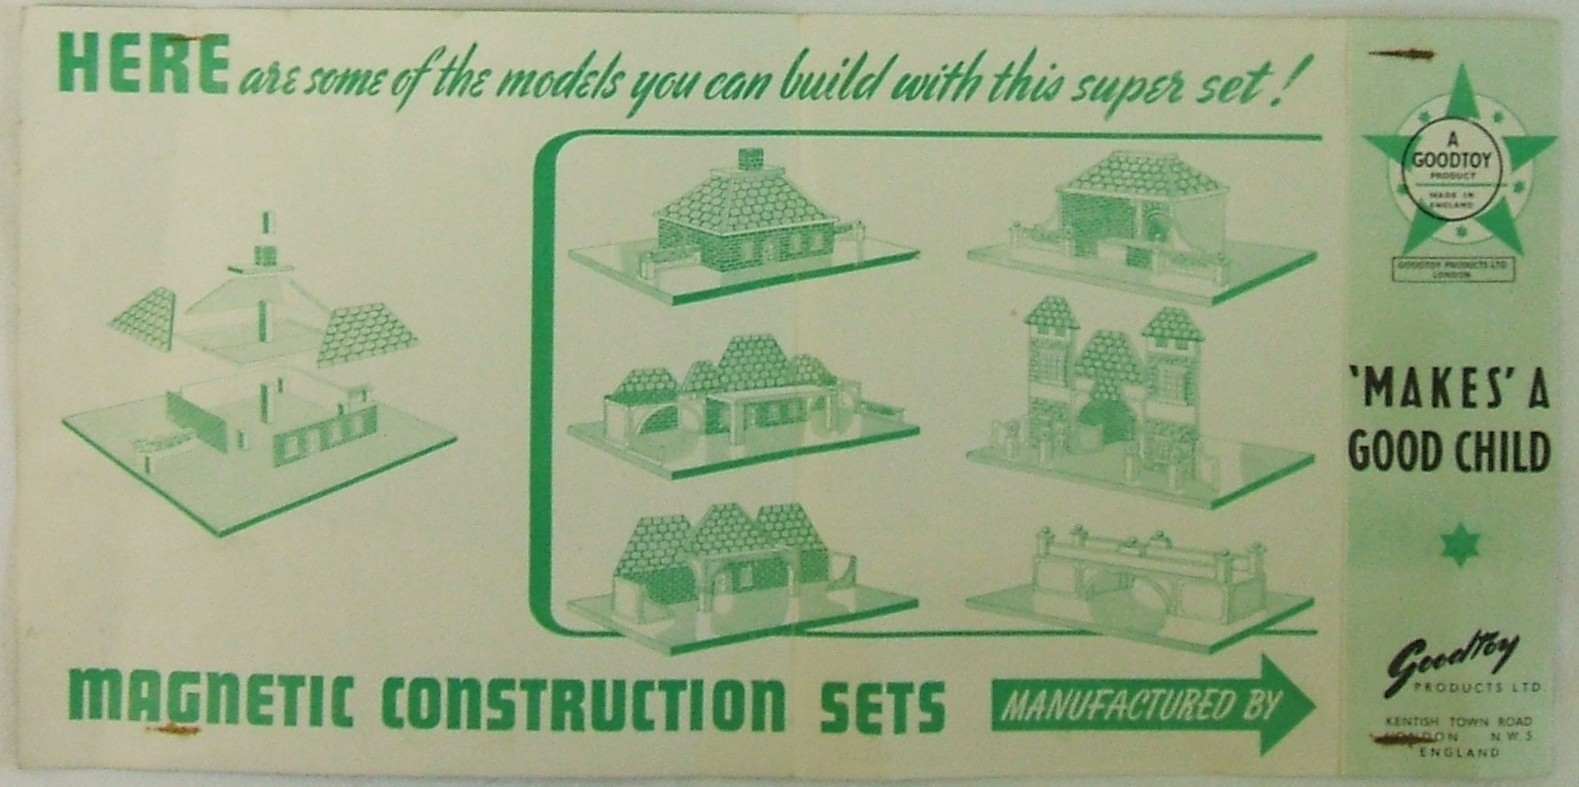 Magnetic Constructional Toys leaflet